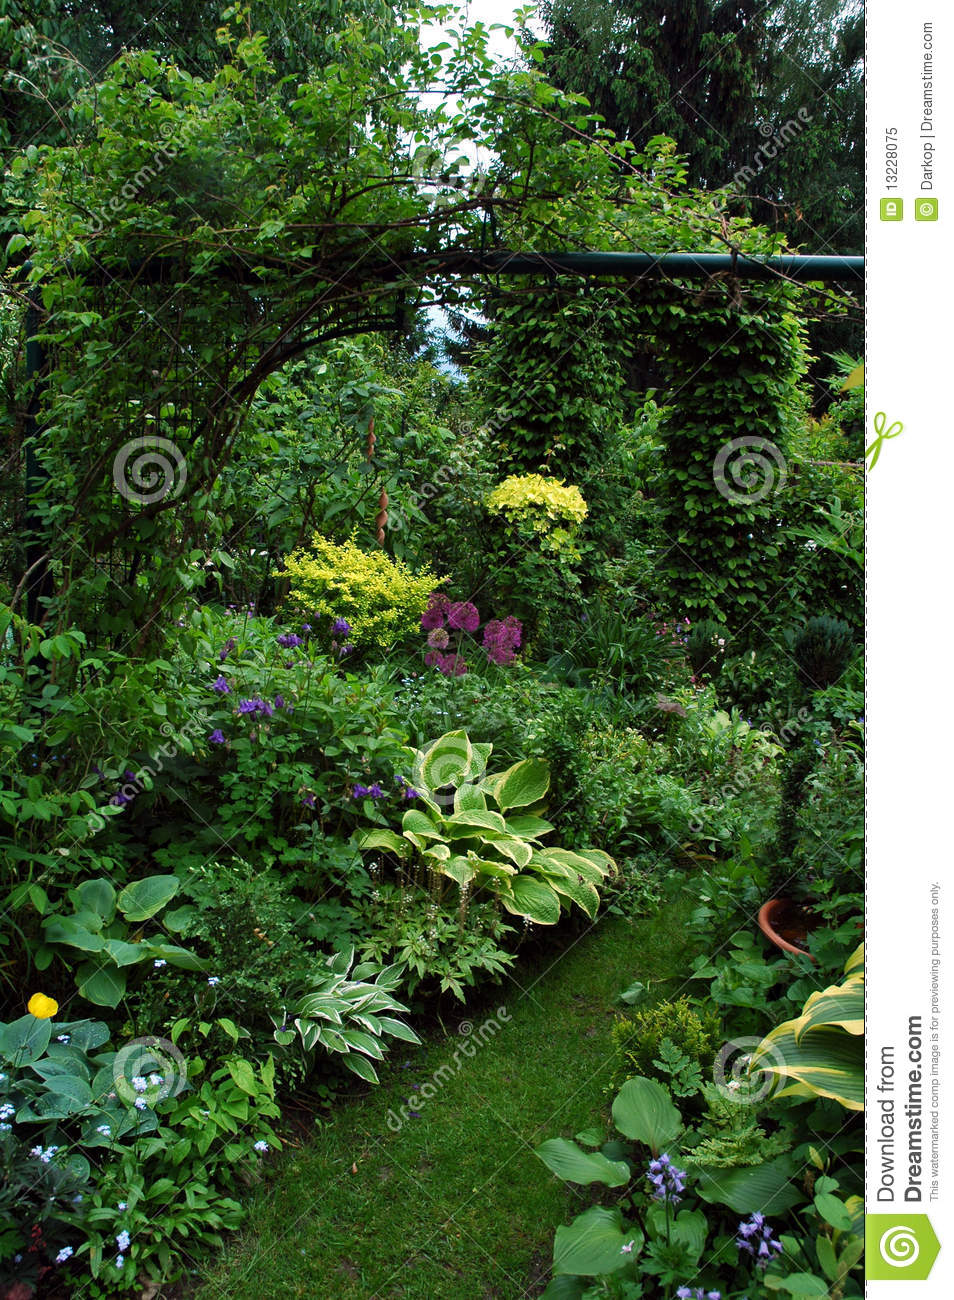 Group Plants In The Shadow Garden Place Royalty Free Stock